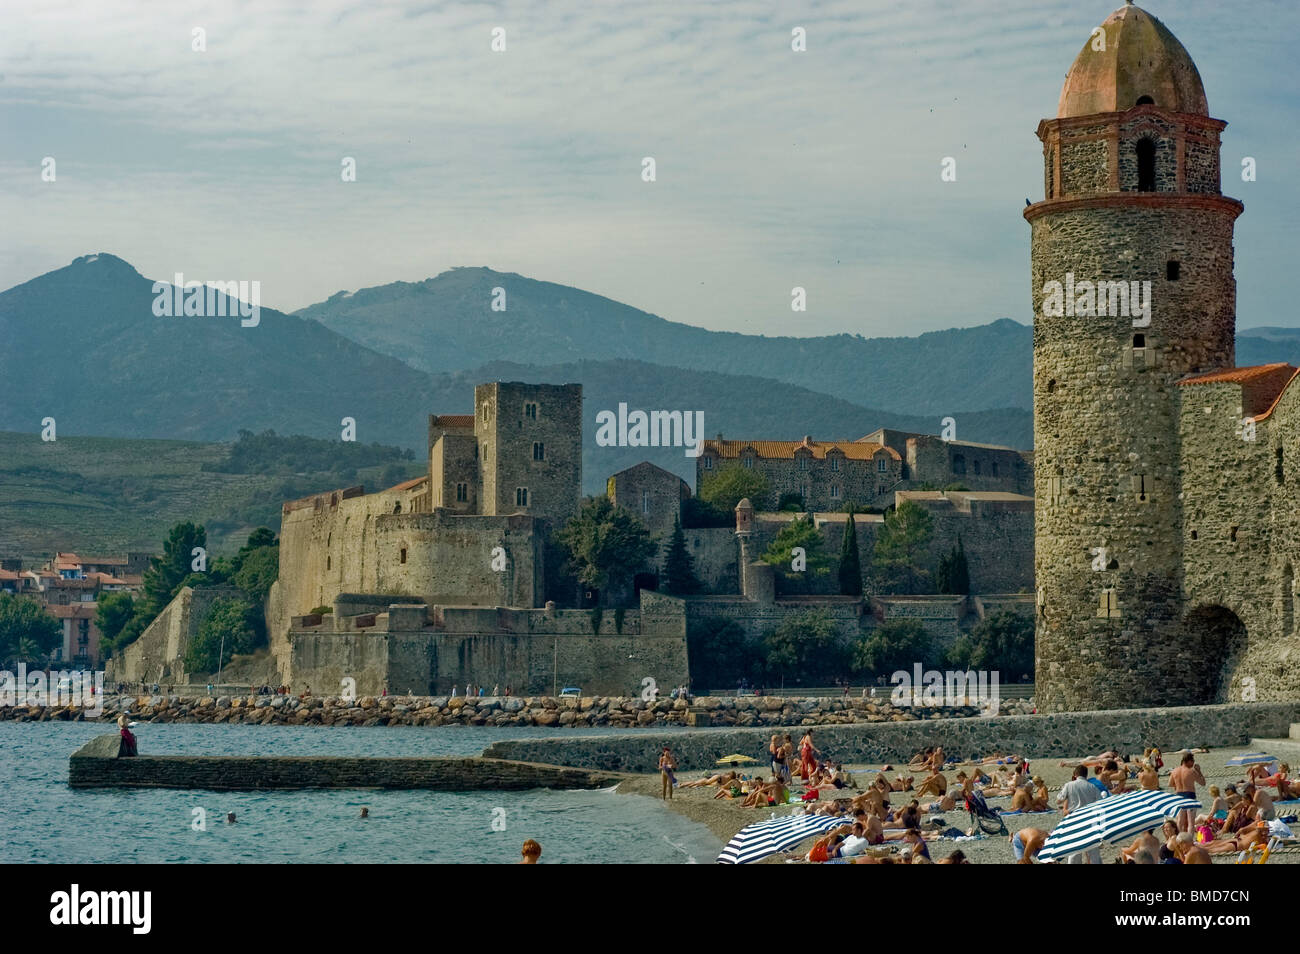 Calliore, South of France, Beach Town,  Overview  on Mediterranean Sea, South of France.  Eglise Notre Dame de Anges Stock Photo